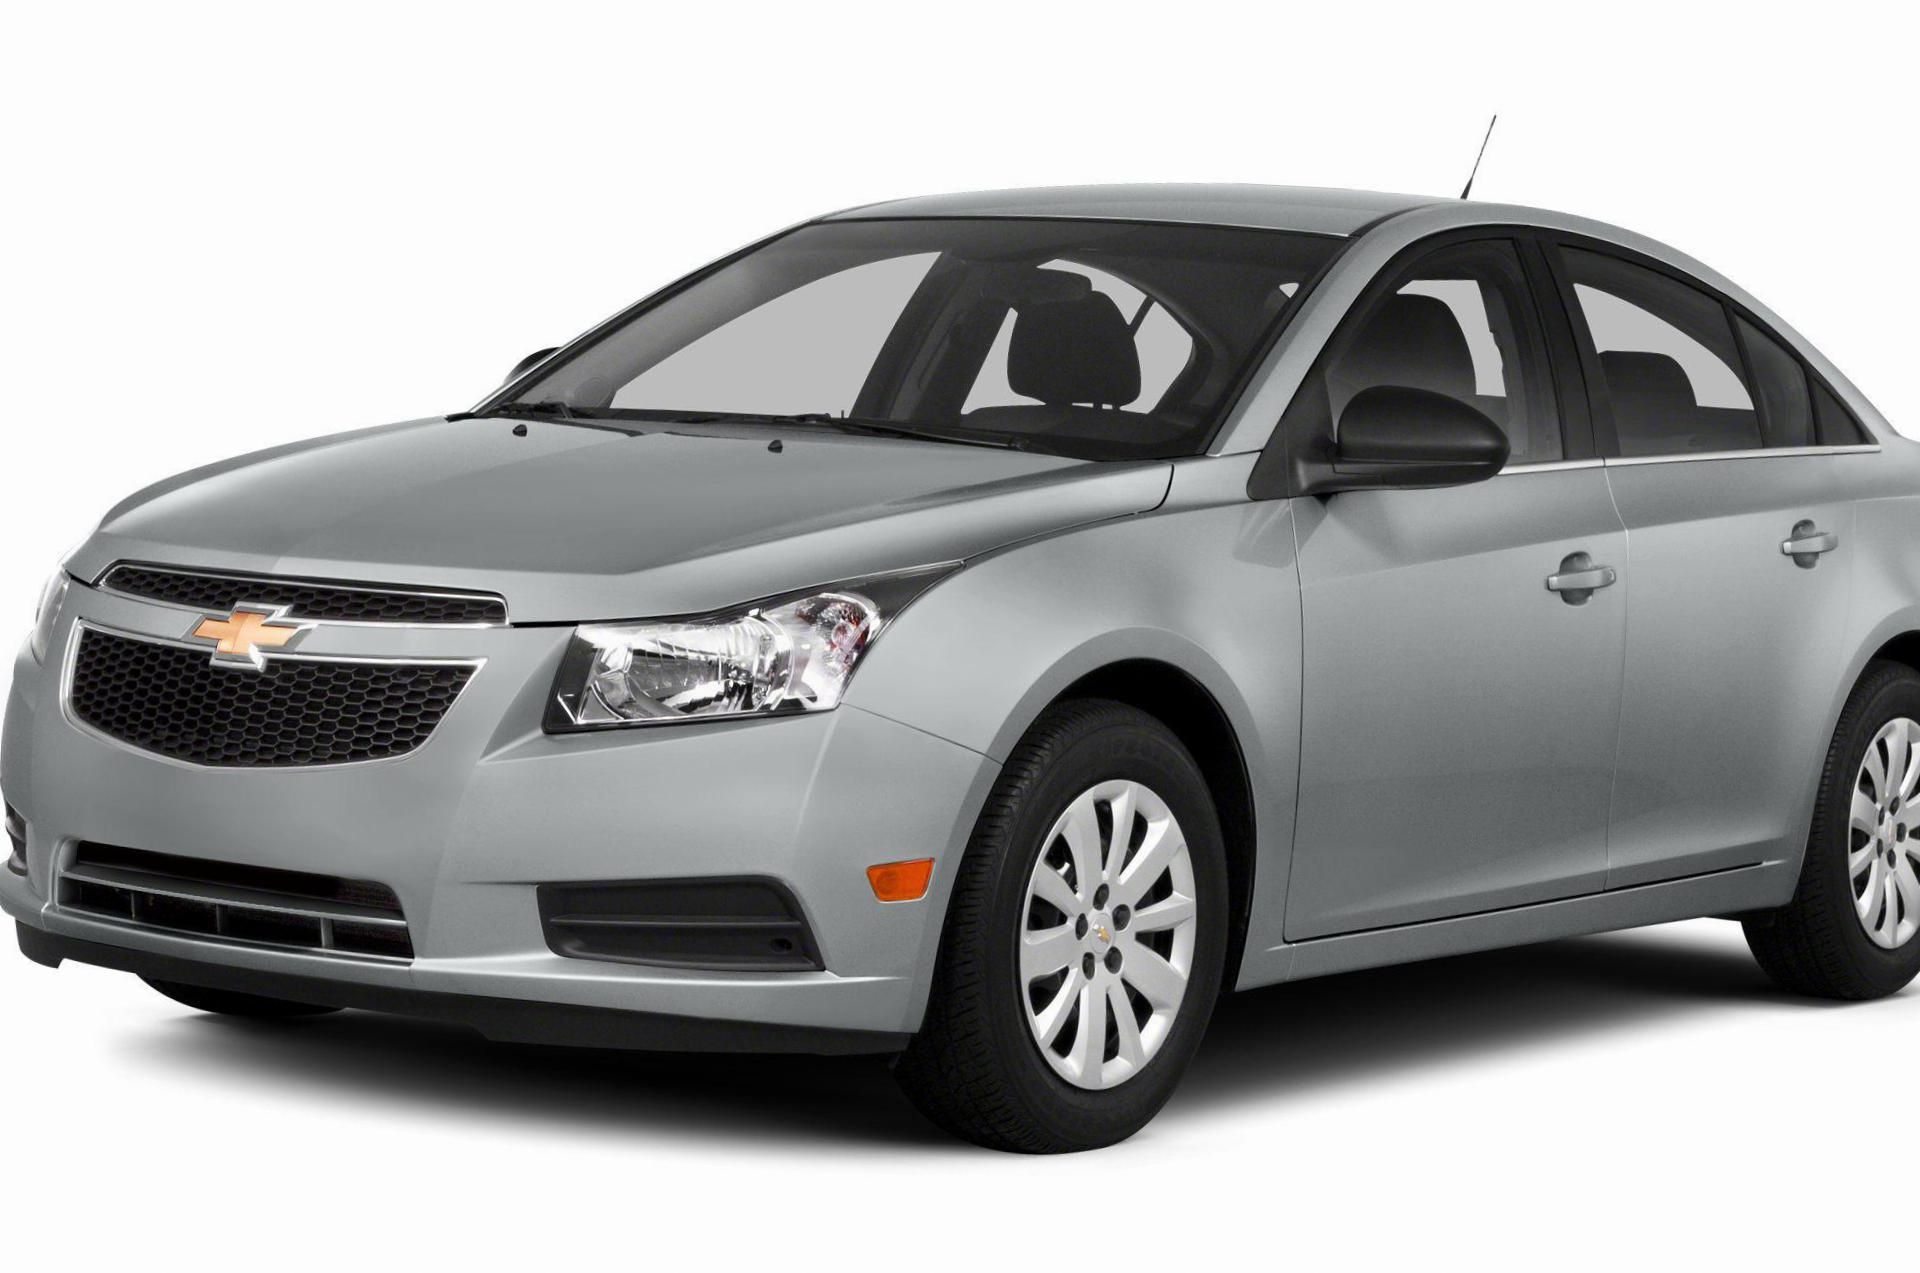 Cruze Chevrolet approved 2009